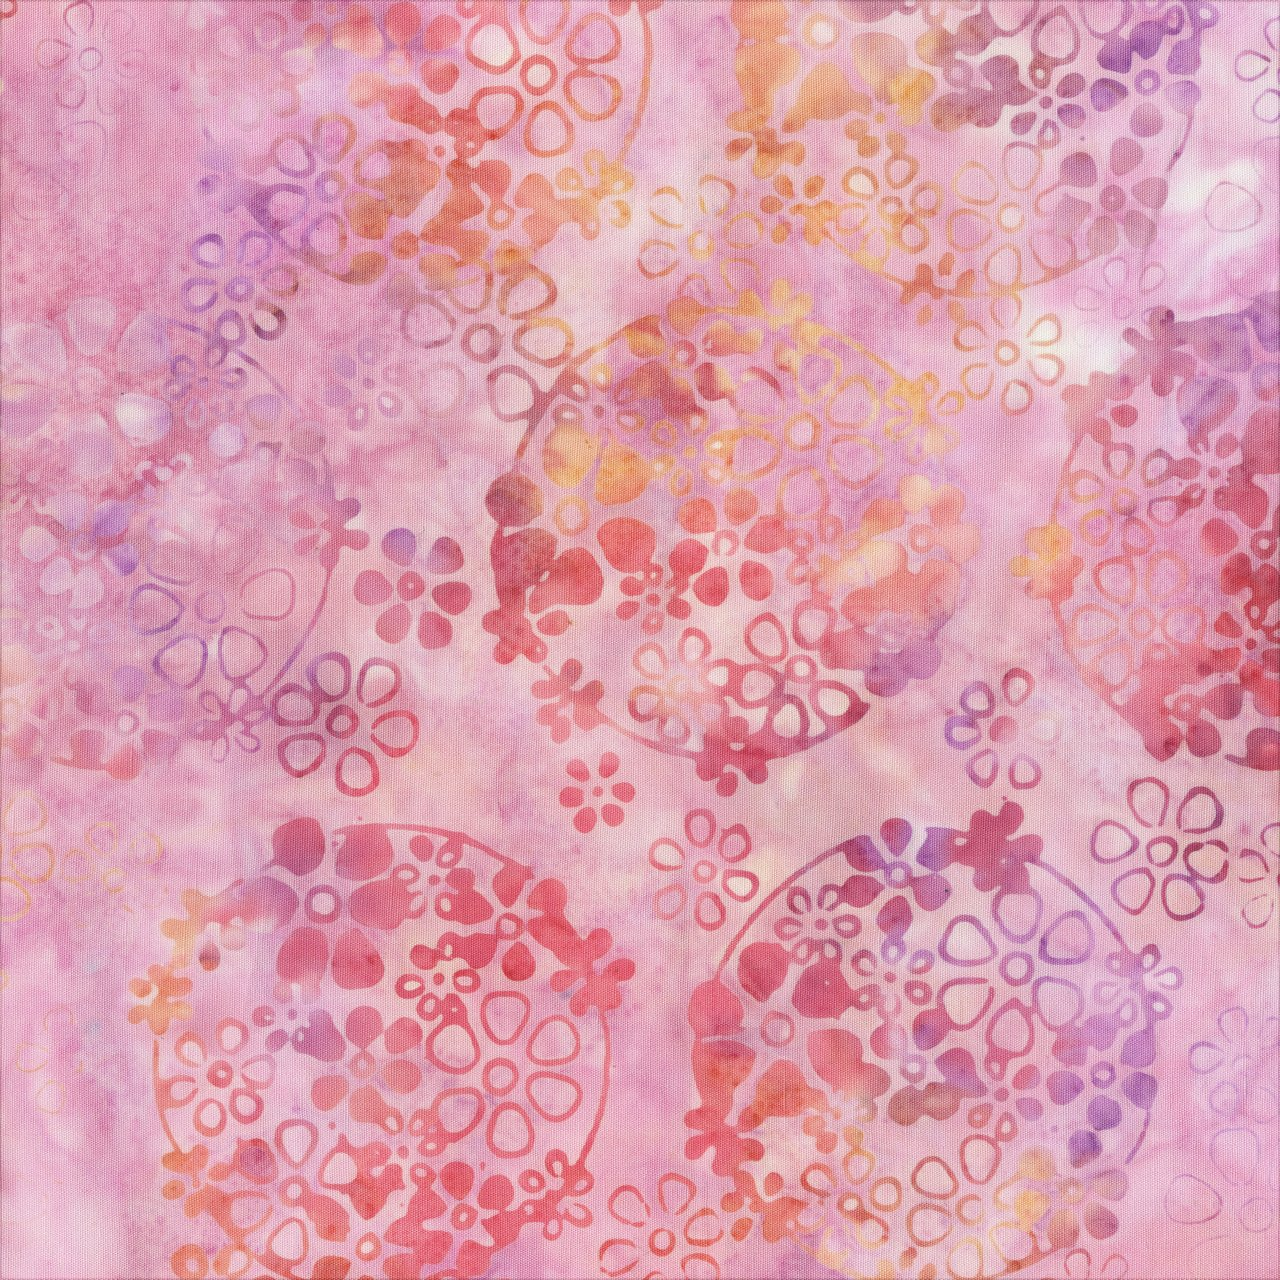 316Q 8  PINK  JACQUELINE'S DESIRE BY ANTHOLOGY FABRICS